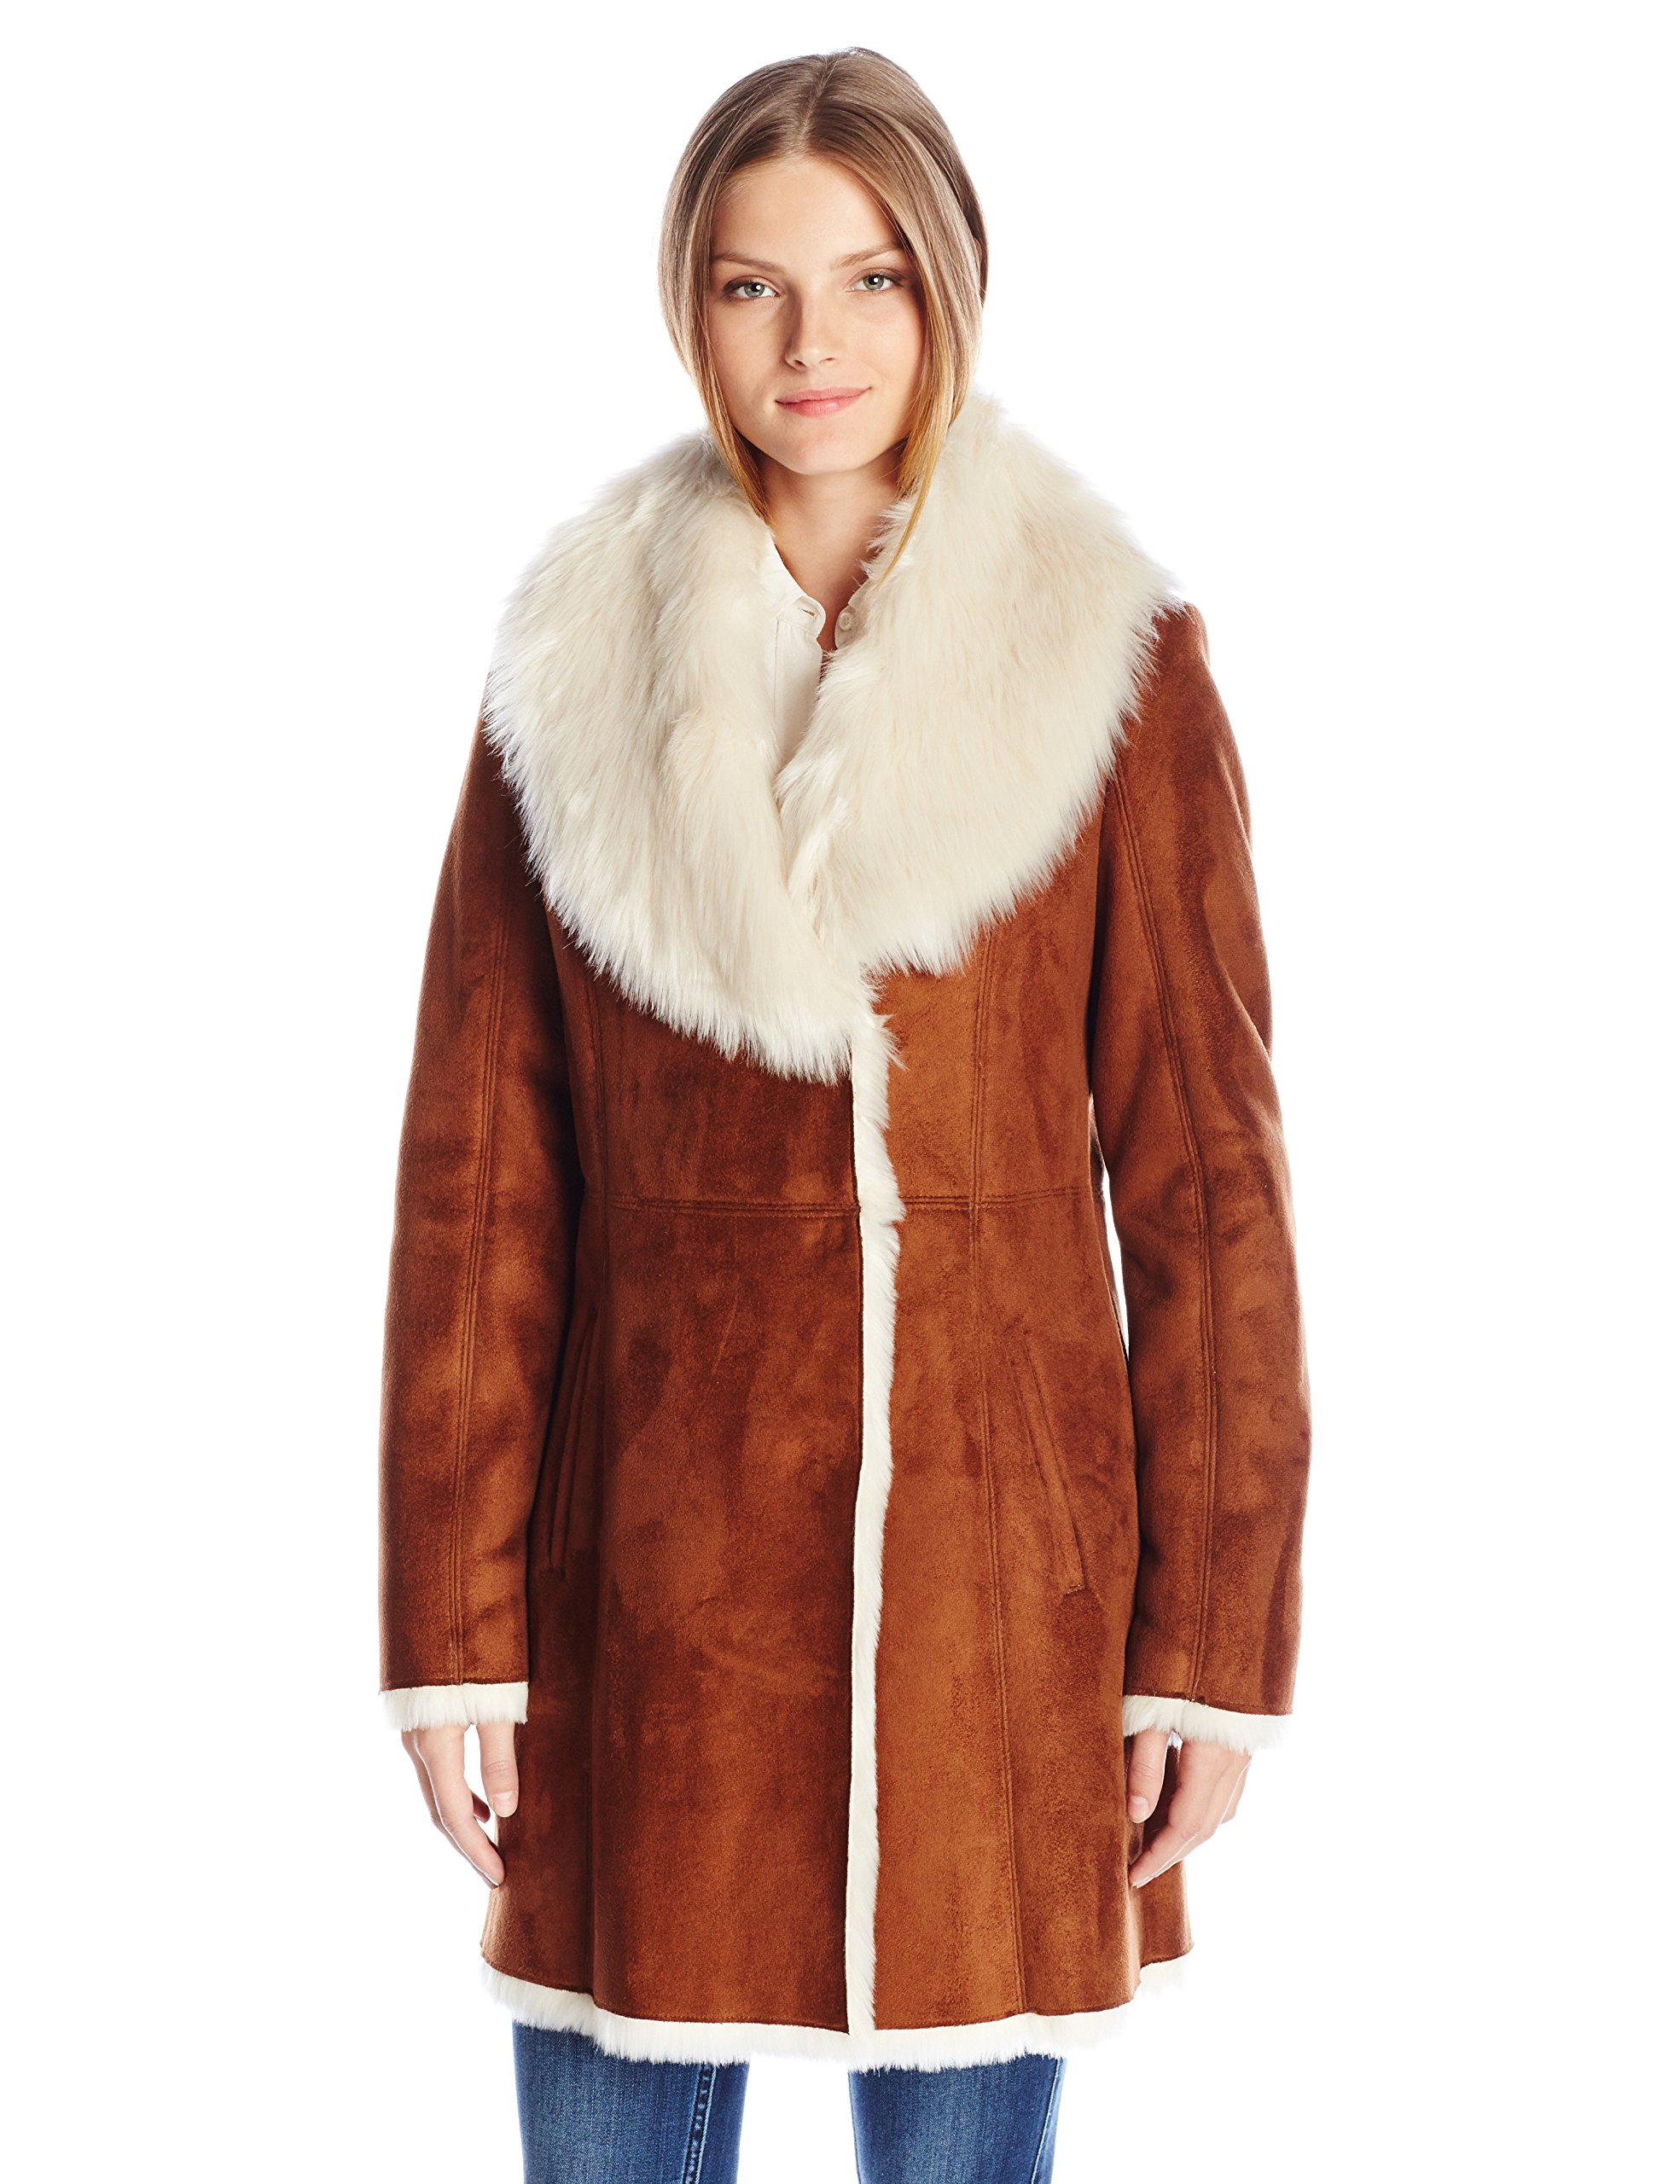 Marc New York by Andrew Marc Women's Sarah 3/4 Length Coat with Faux Fur Collar, Whiskey Cream, L by Marc New York by Andrew Marc